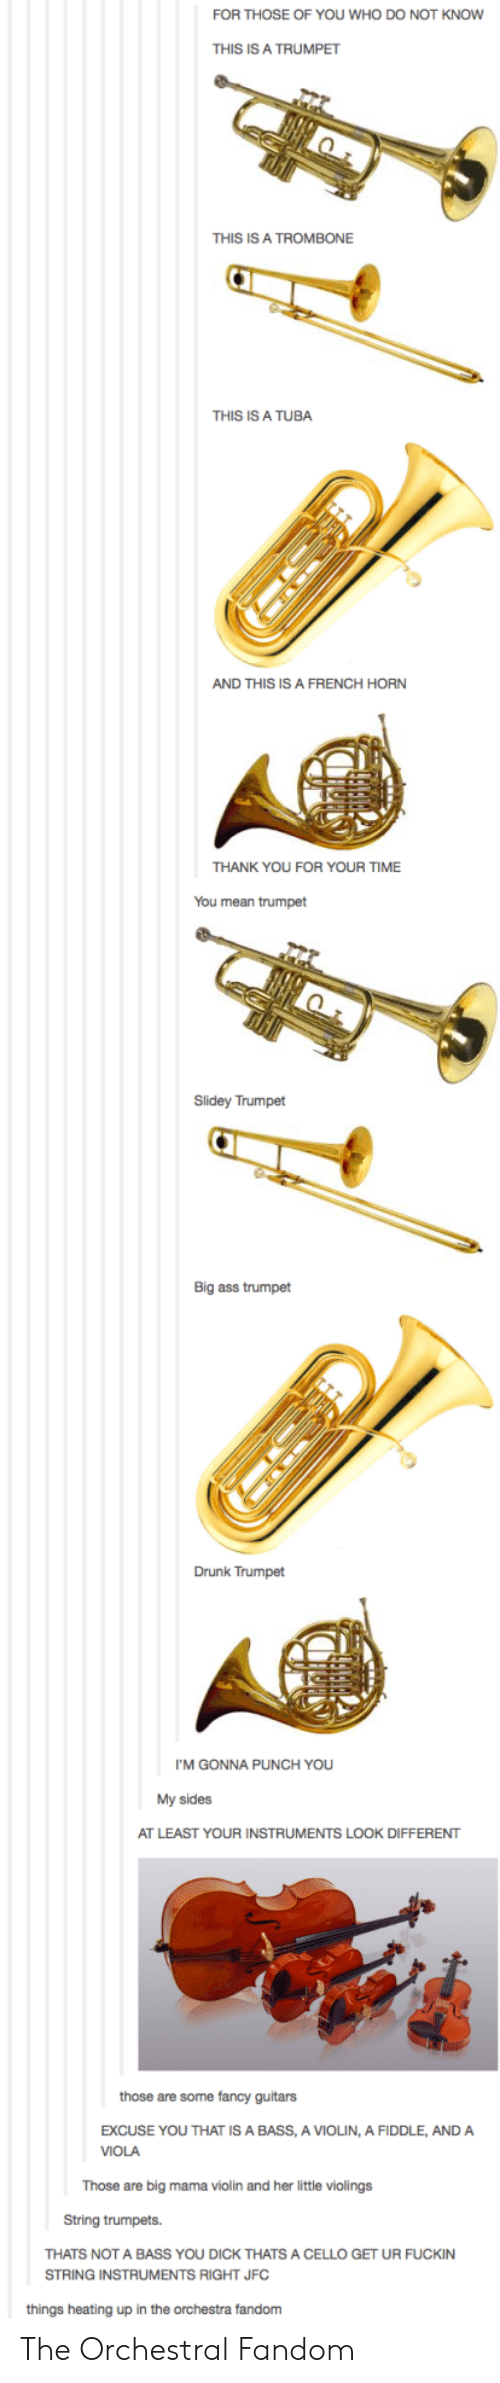 You Dick: FOR THOSE OF YOU WHO DO NOT KNOW  THIS IS A TRUMPET  THIS IS A TROMBONE  THIS IS A TUBA  AND THIS IS A FRENCH HORN  THANK YOU FOR YOUR TIME  You mean trumpet  Slidey Trumpet  Big ass trumpet  Drunk Trumpet  I'M GONNA PUNCH YOU  My sides  AT LEAST YOUR INSTRUMENTS LOOK DIFFERENT  those are some fancy guitars  EXCUSE YOU THAT IS A BASS, A VIOLIN, A FIDDLE, ANDA  VIOLA  Those are big mama violin and her little violings  String trumpets.  THATS NOT A BASS YOU DICK THATS A CELLO GET UR FUCKIN  STRING INSTRUMENTS RIGHT JFC  things heating up in the orchestra fandom The Orchestral Fandom